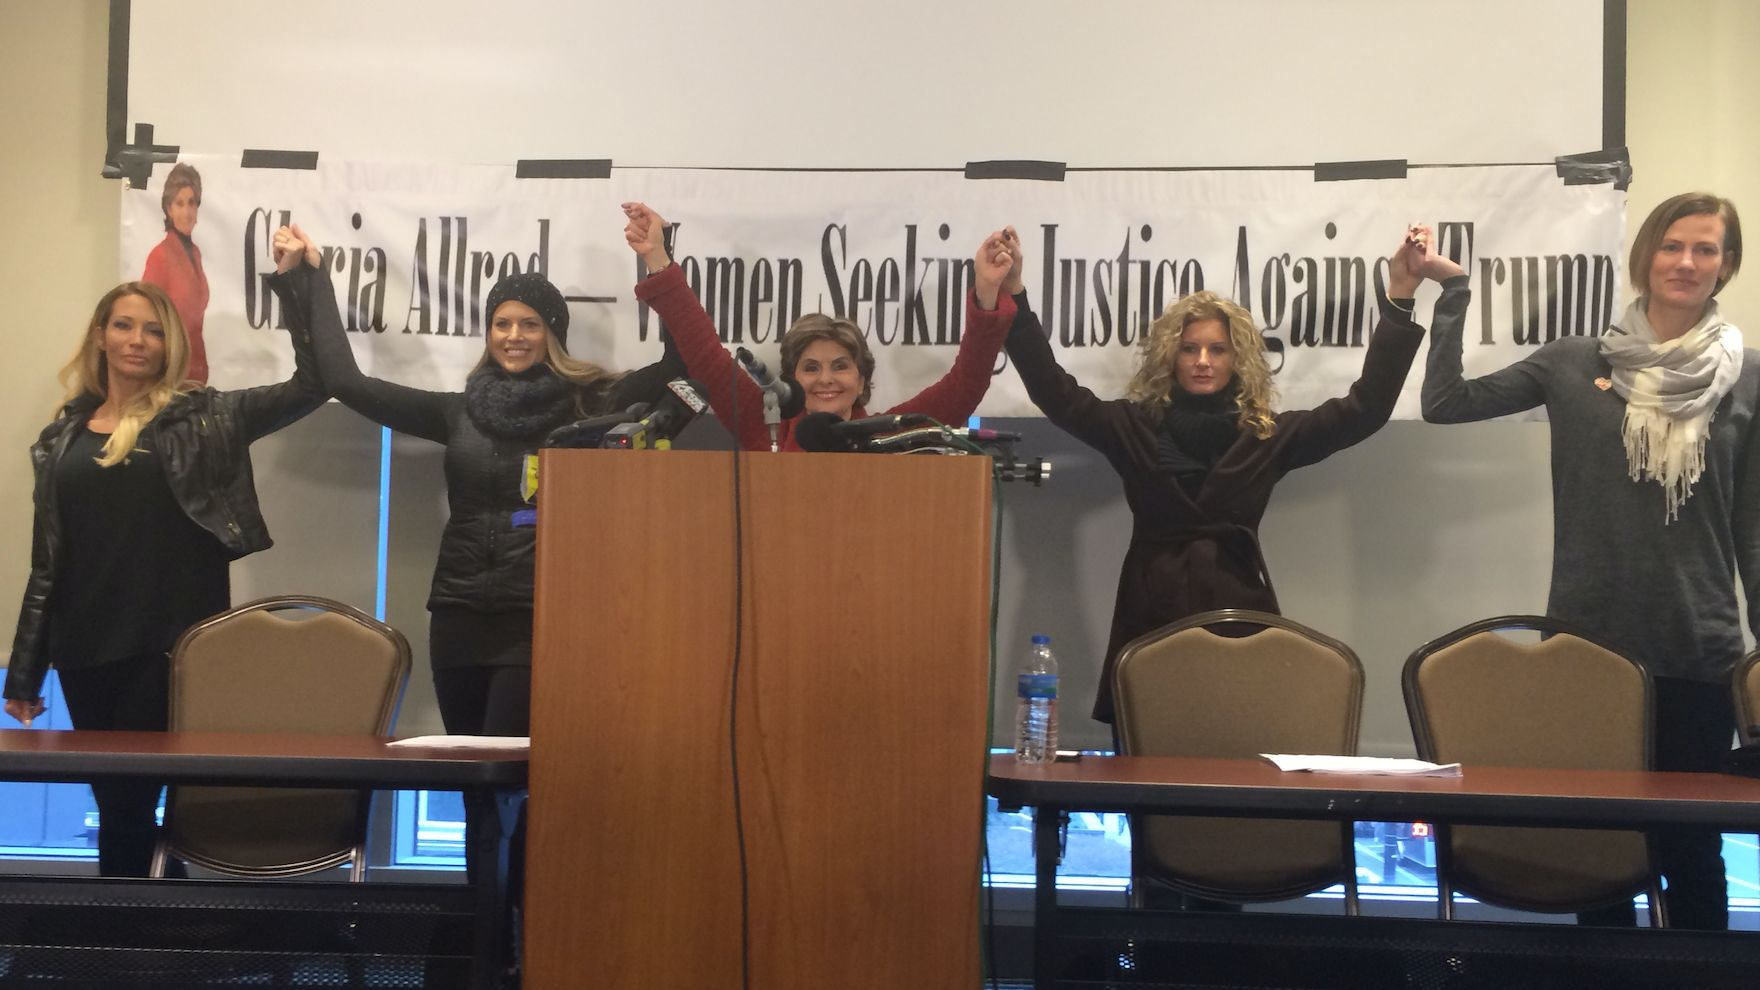 From the left: Jessica Drake, Temple Taggart, Gloria Allred, Summer Zervos and Rachel Crooks.